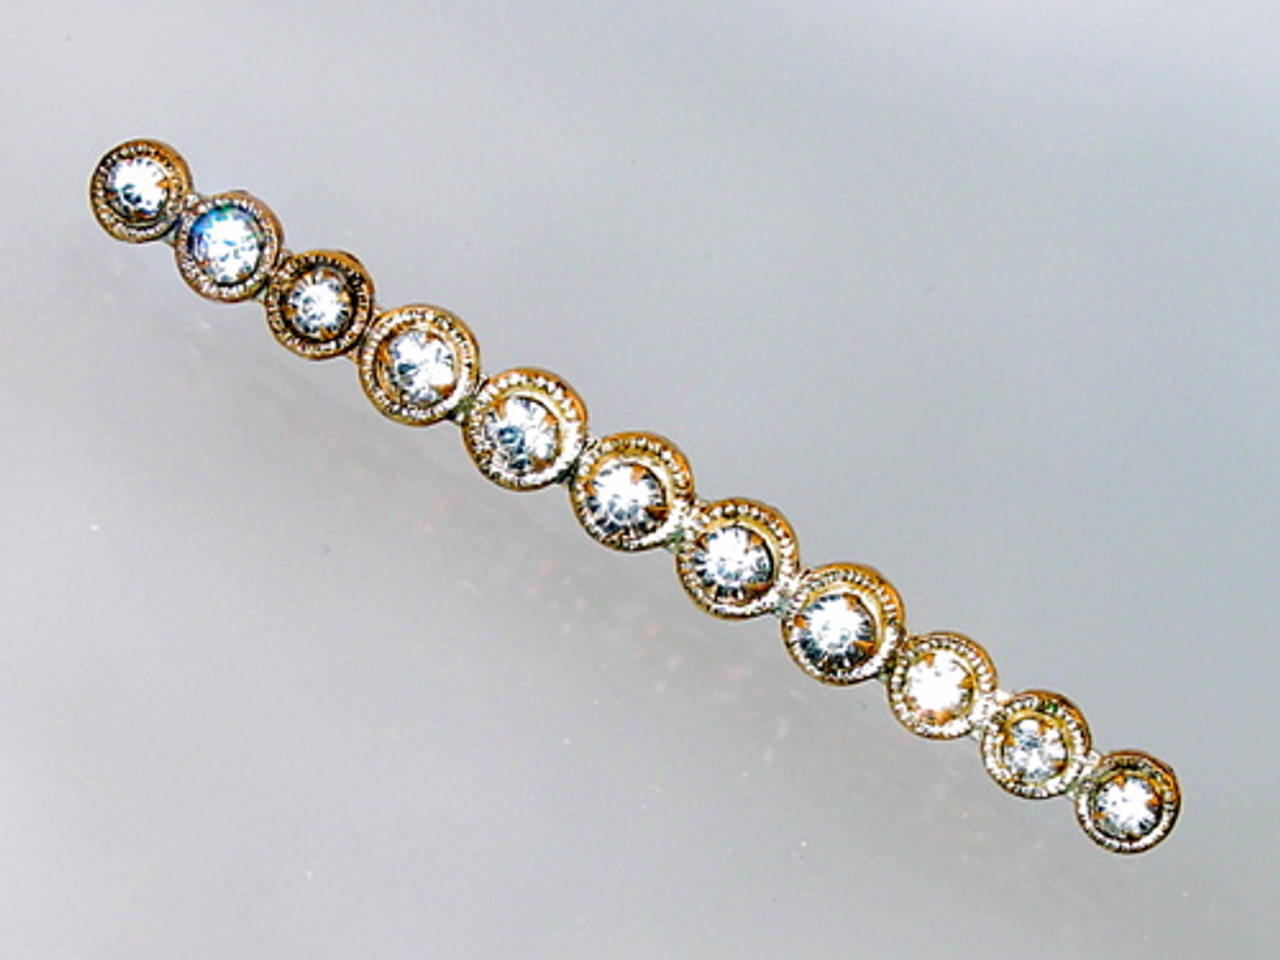 Antique paste crystal pin